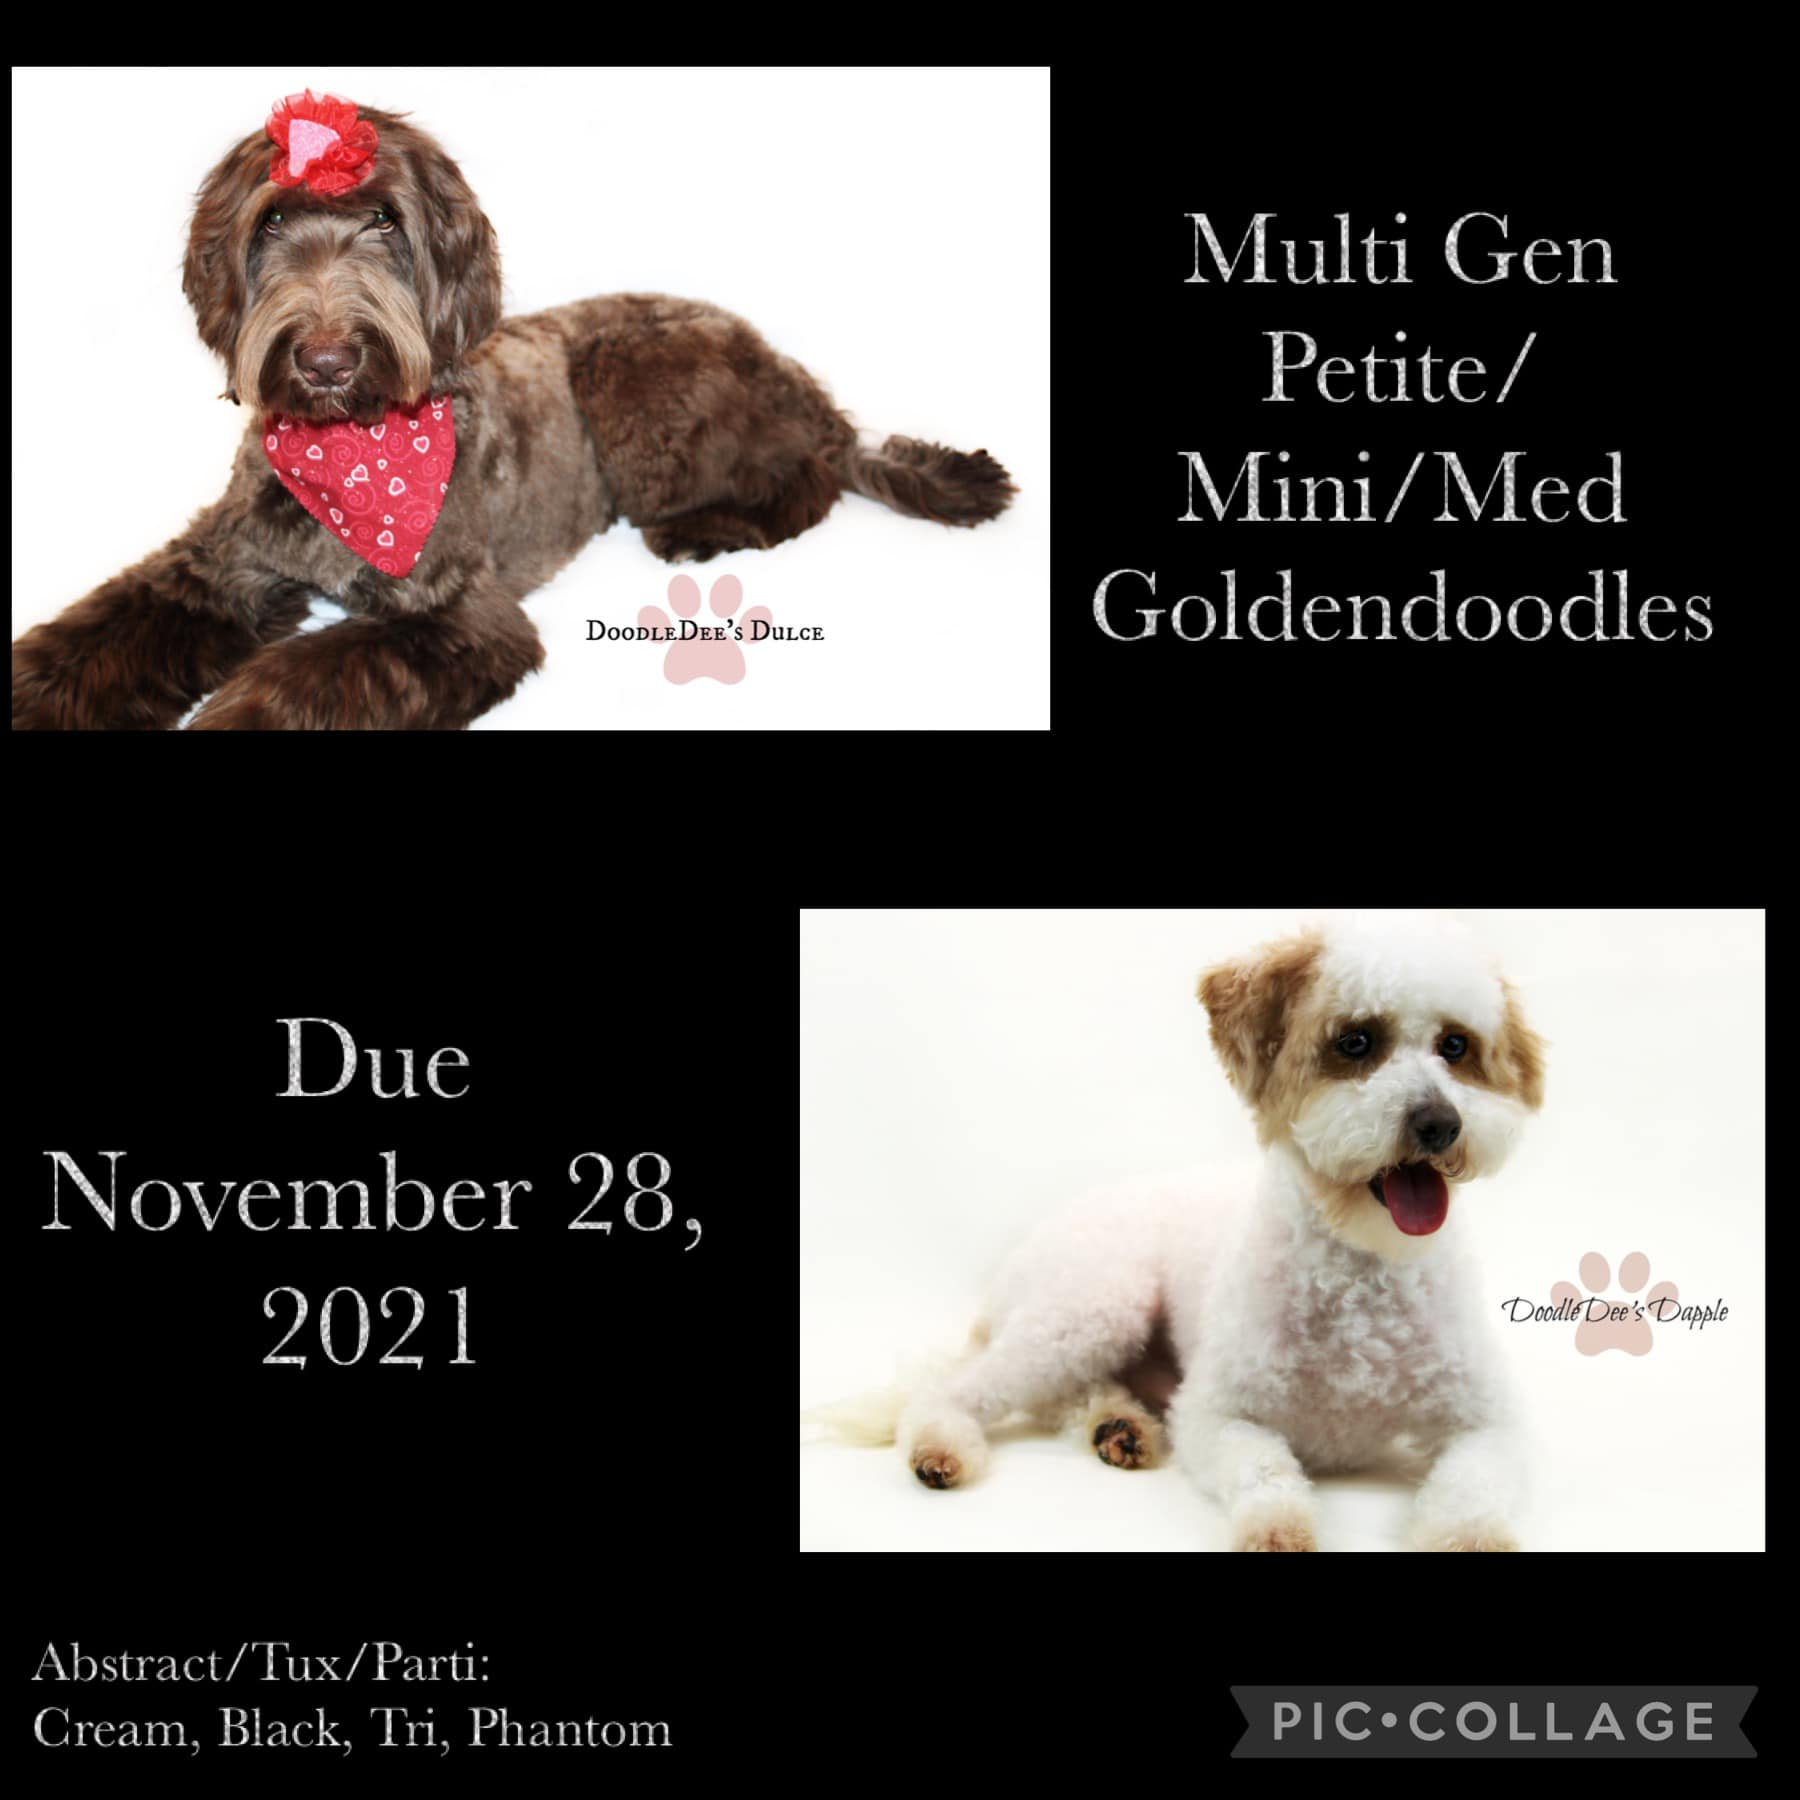 goldendoodle, mini goldendoodle ,goldendoodle puppies for sale, goldendoodle near me, chocolate goldendoodle, petite goldendoodle